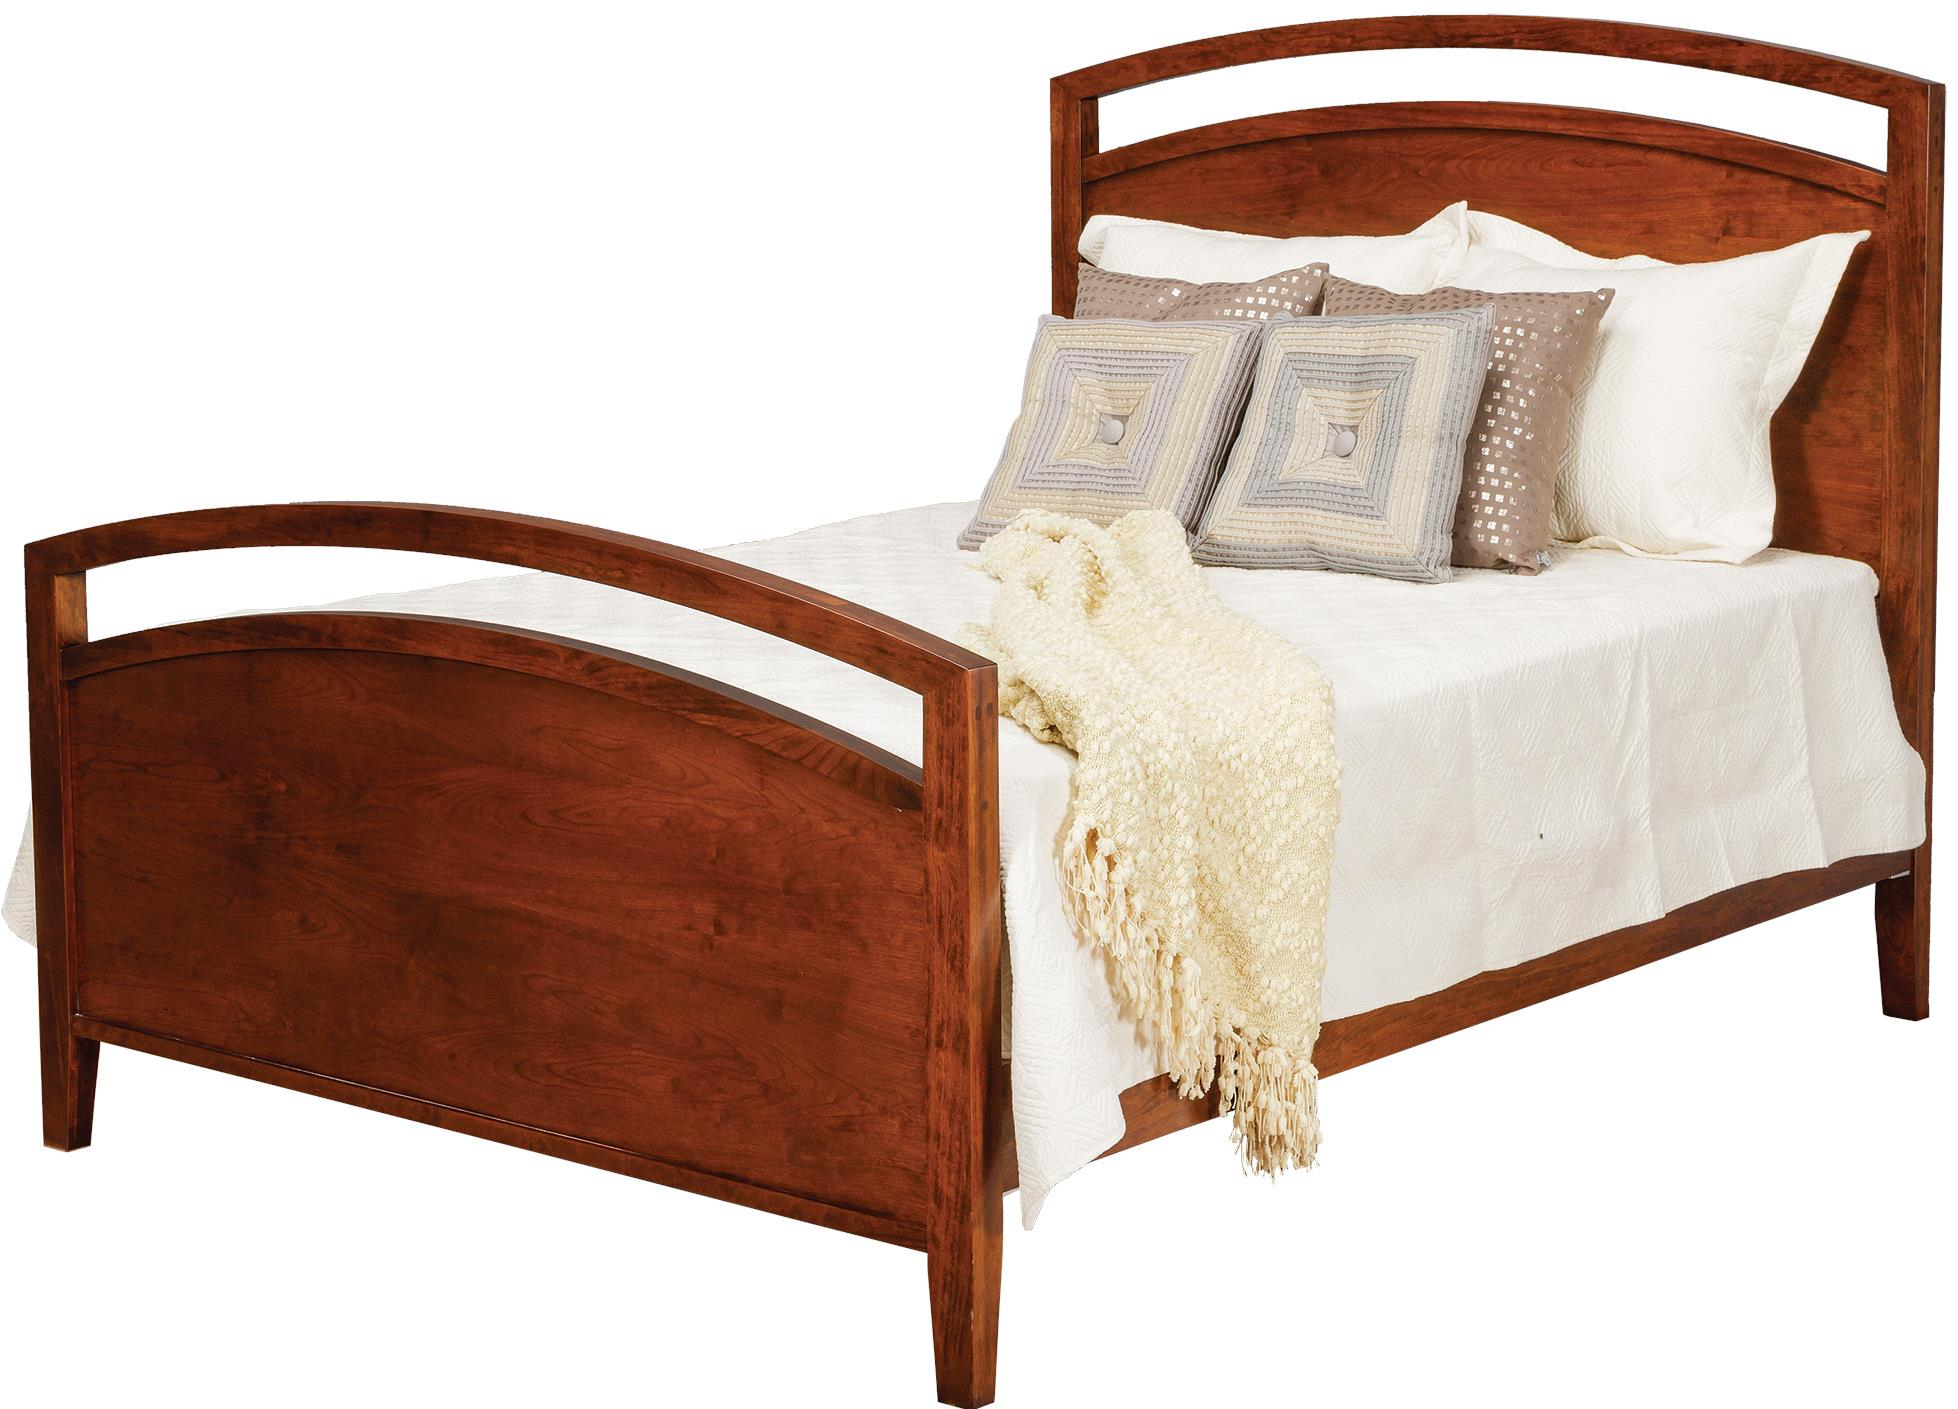 Nouveau Queen Bed by Daniel's Amish at Saugerties Furniture Mart